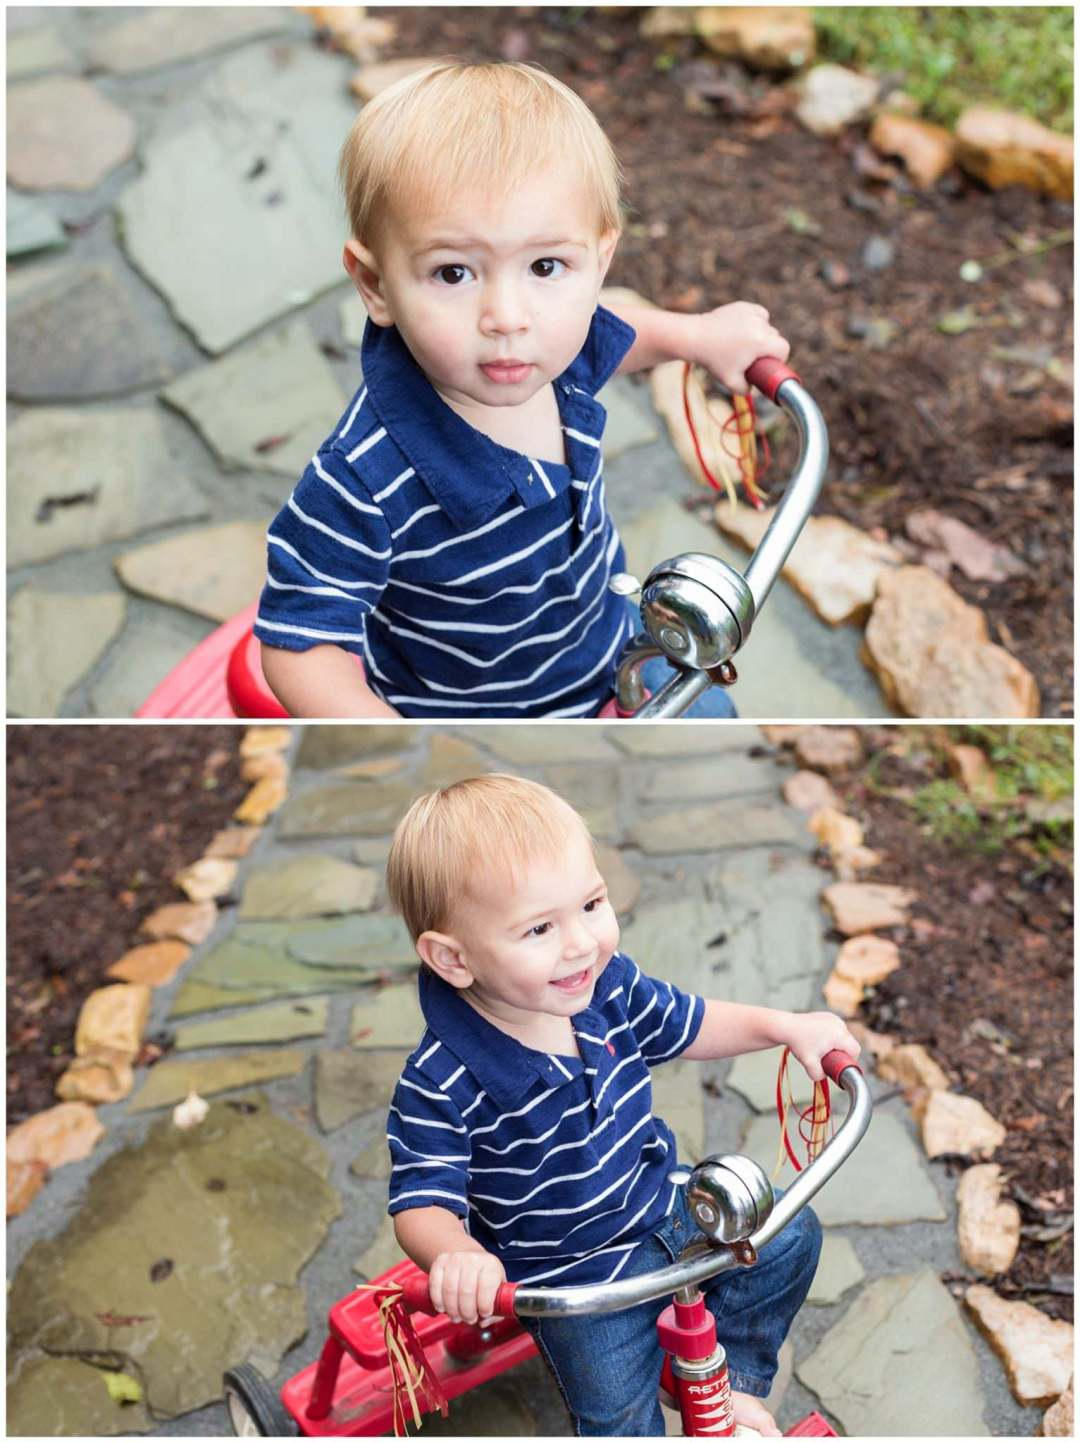 Outdoor kids portraits on stone pathway